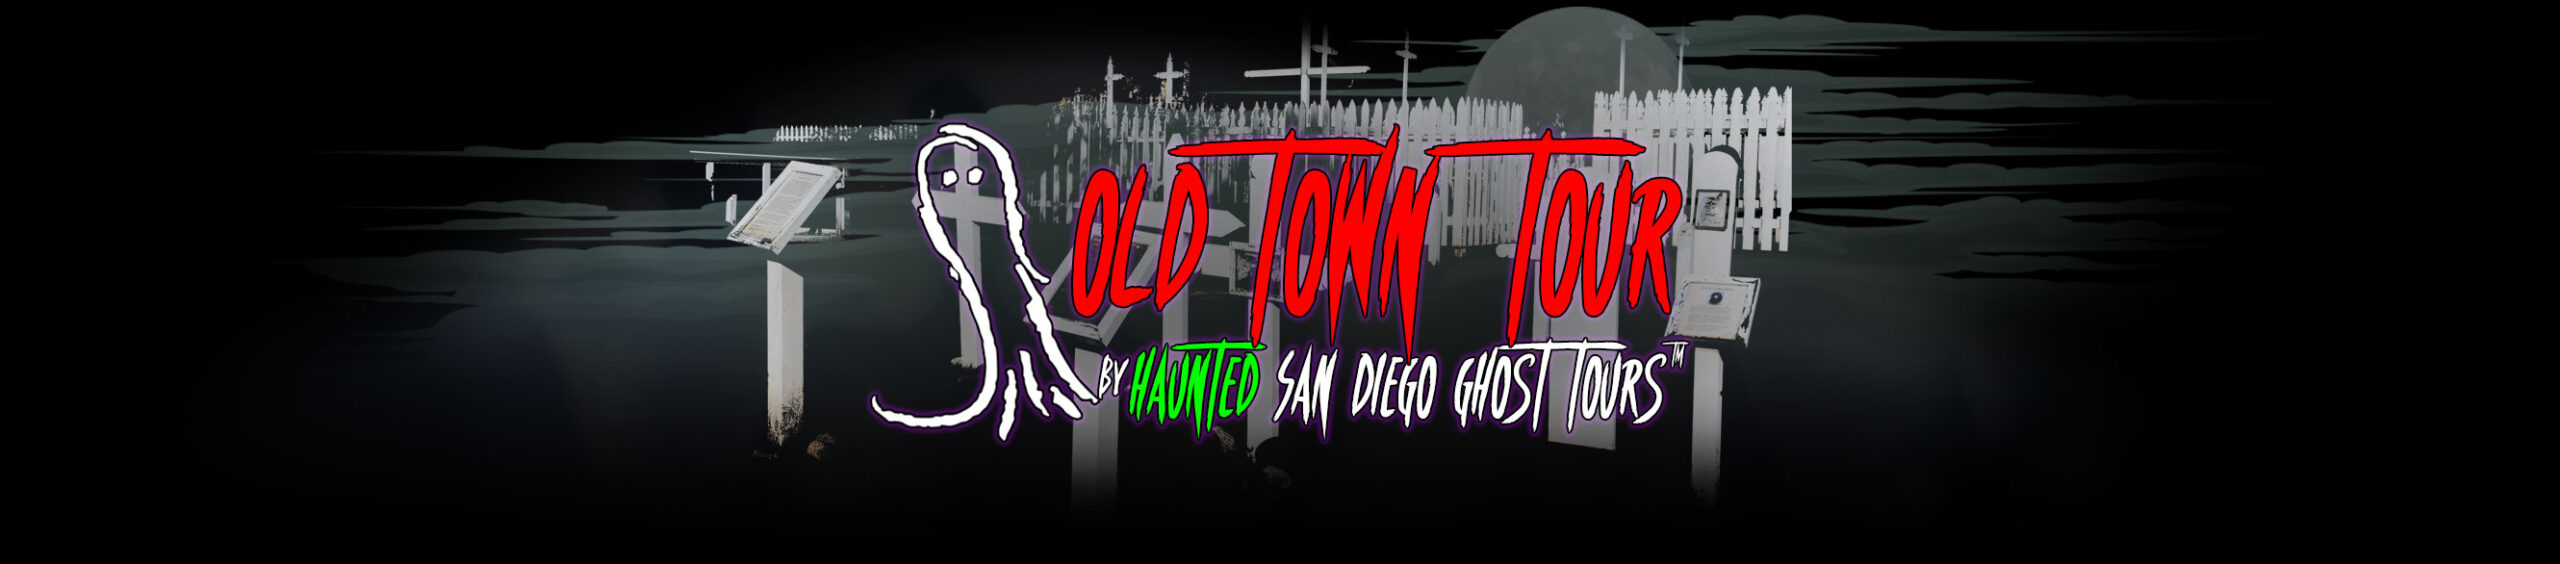 haunted-san-diego-old-town-tour-hero